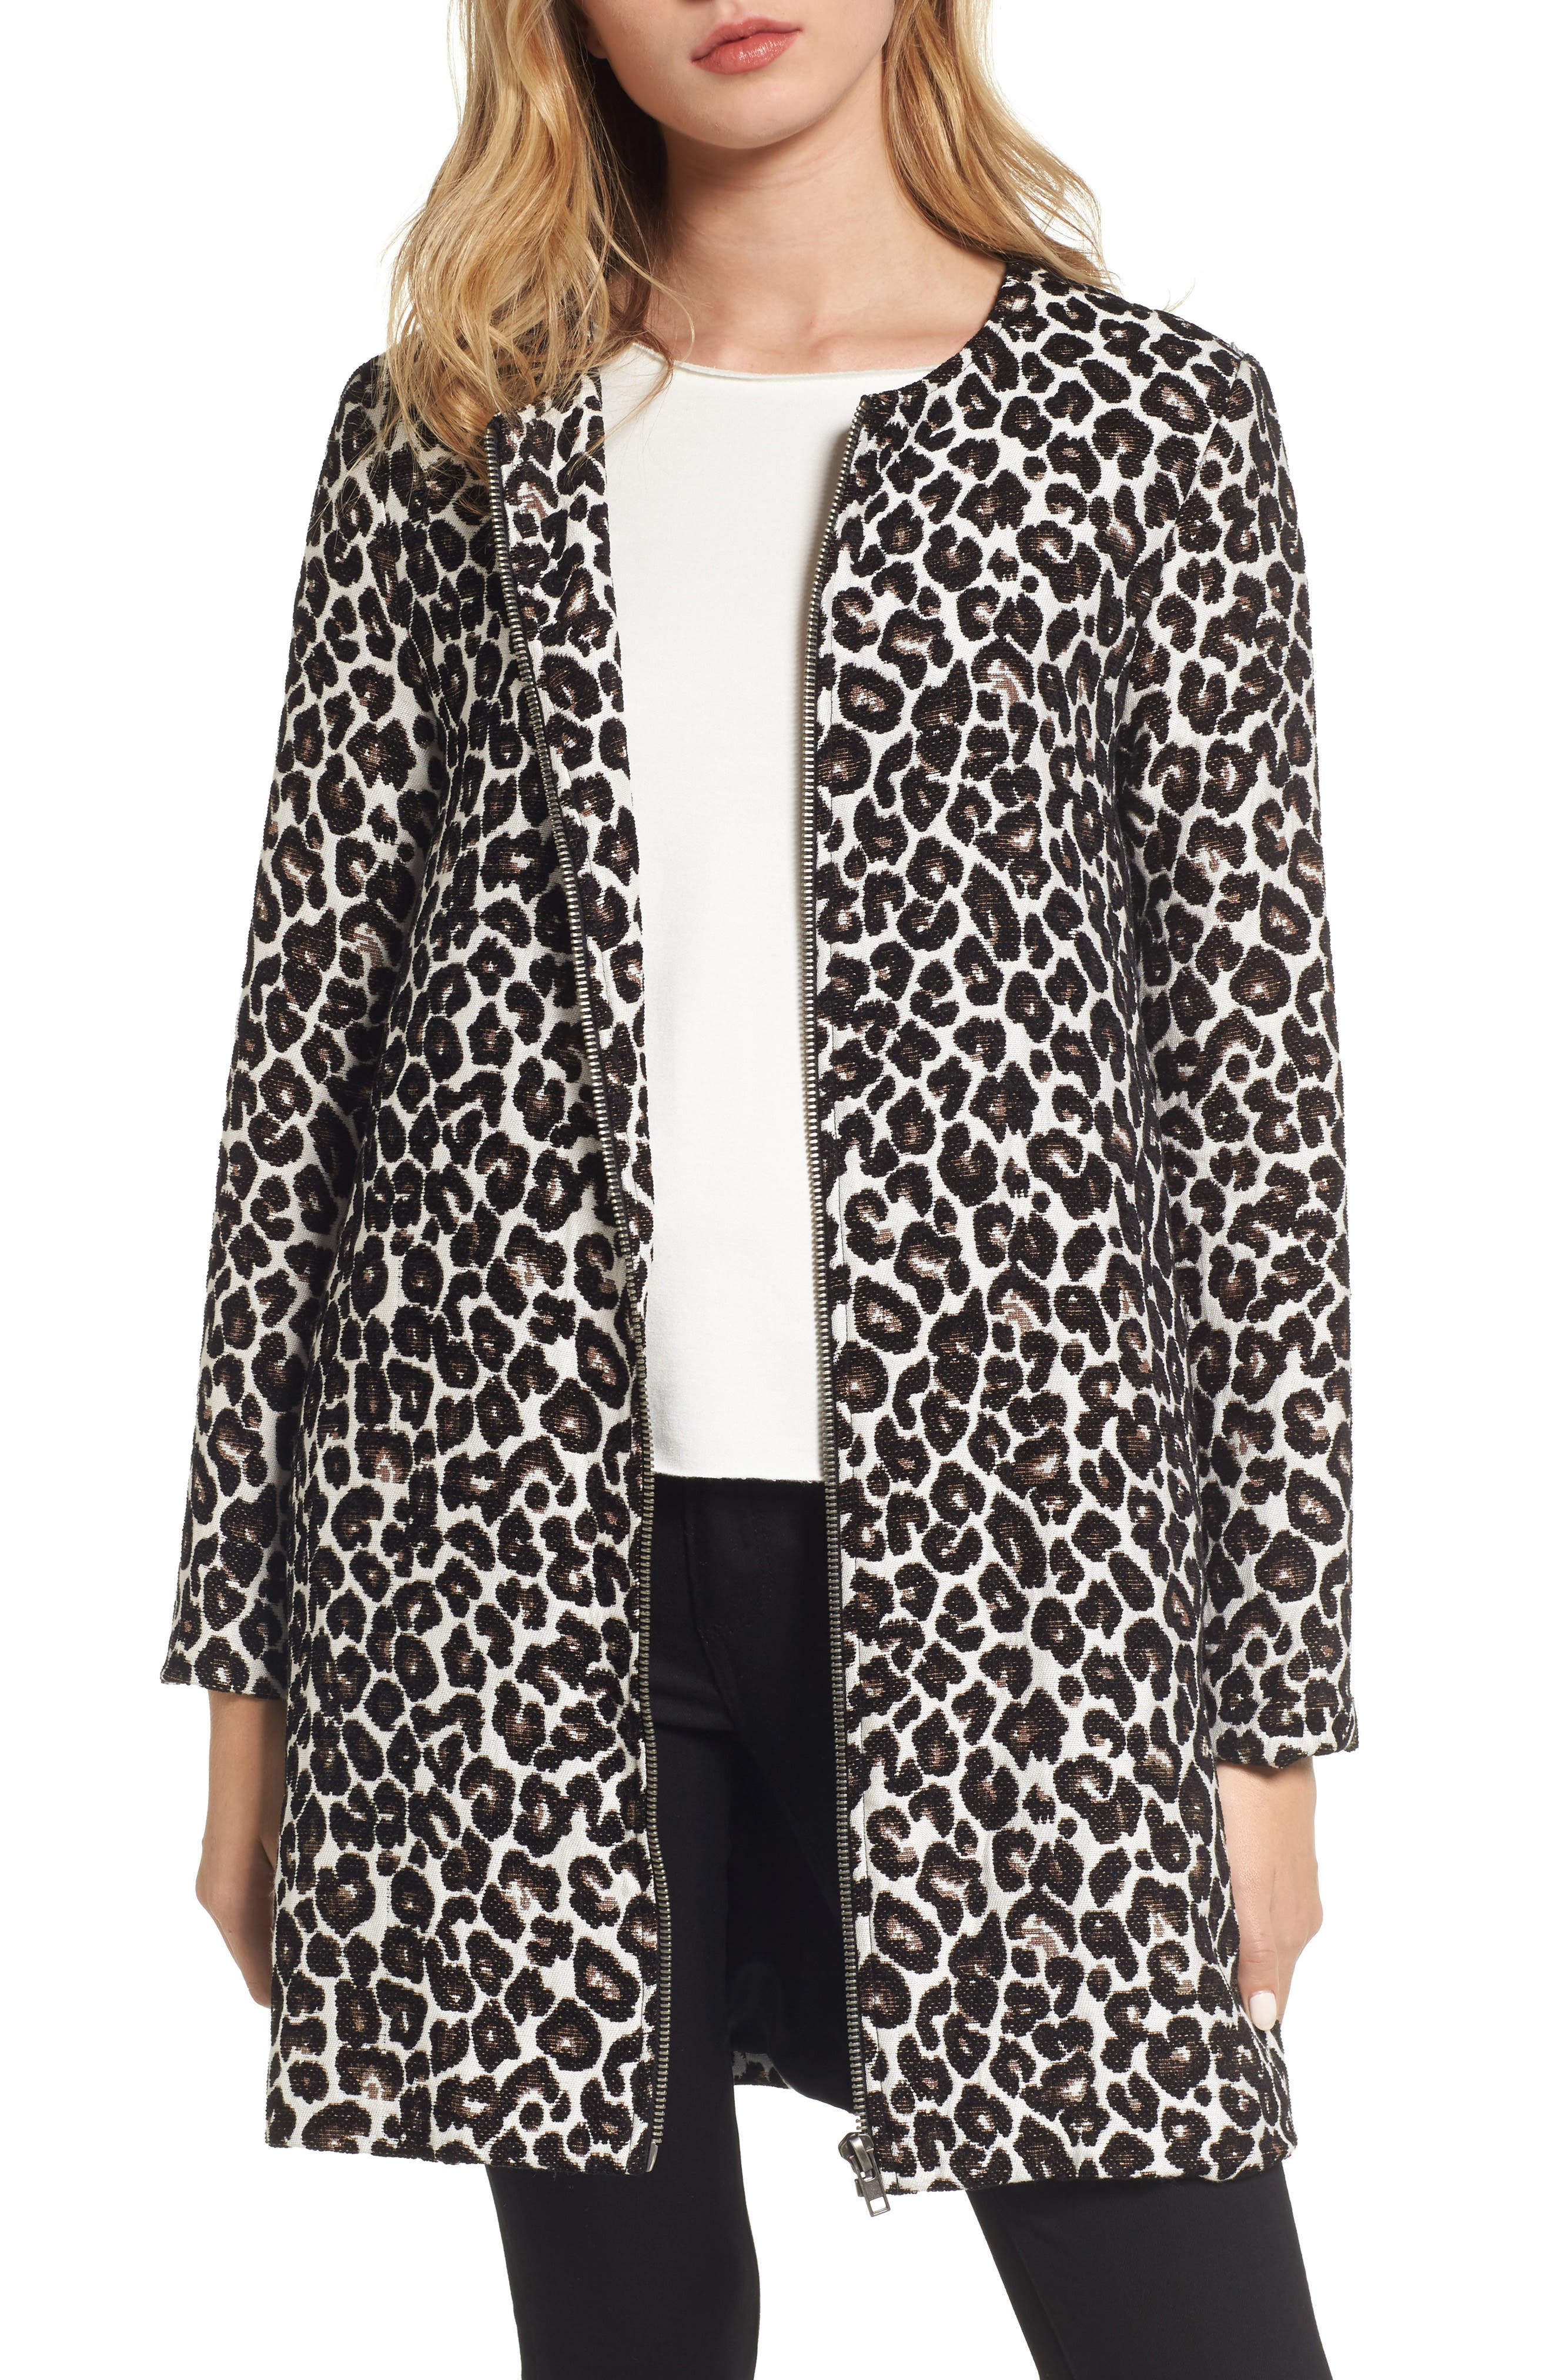 Alternate Image 1 Selected - cupcakes and cashmere Adeltia Leopard Print Jacket